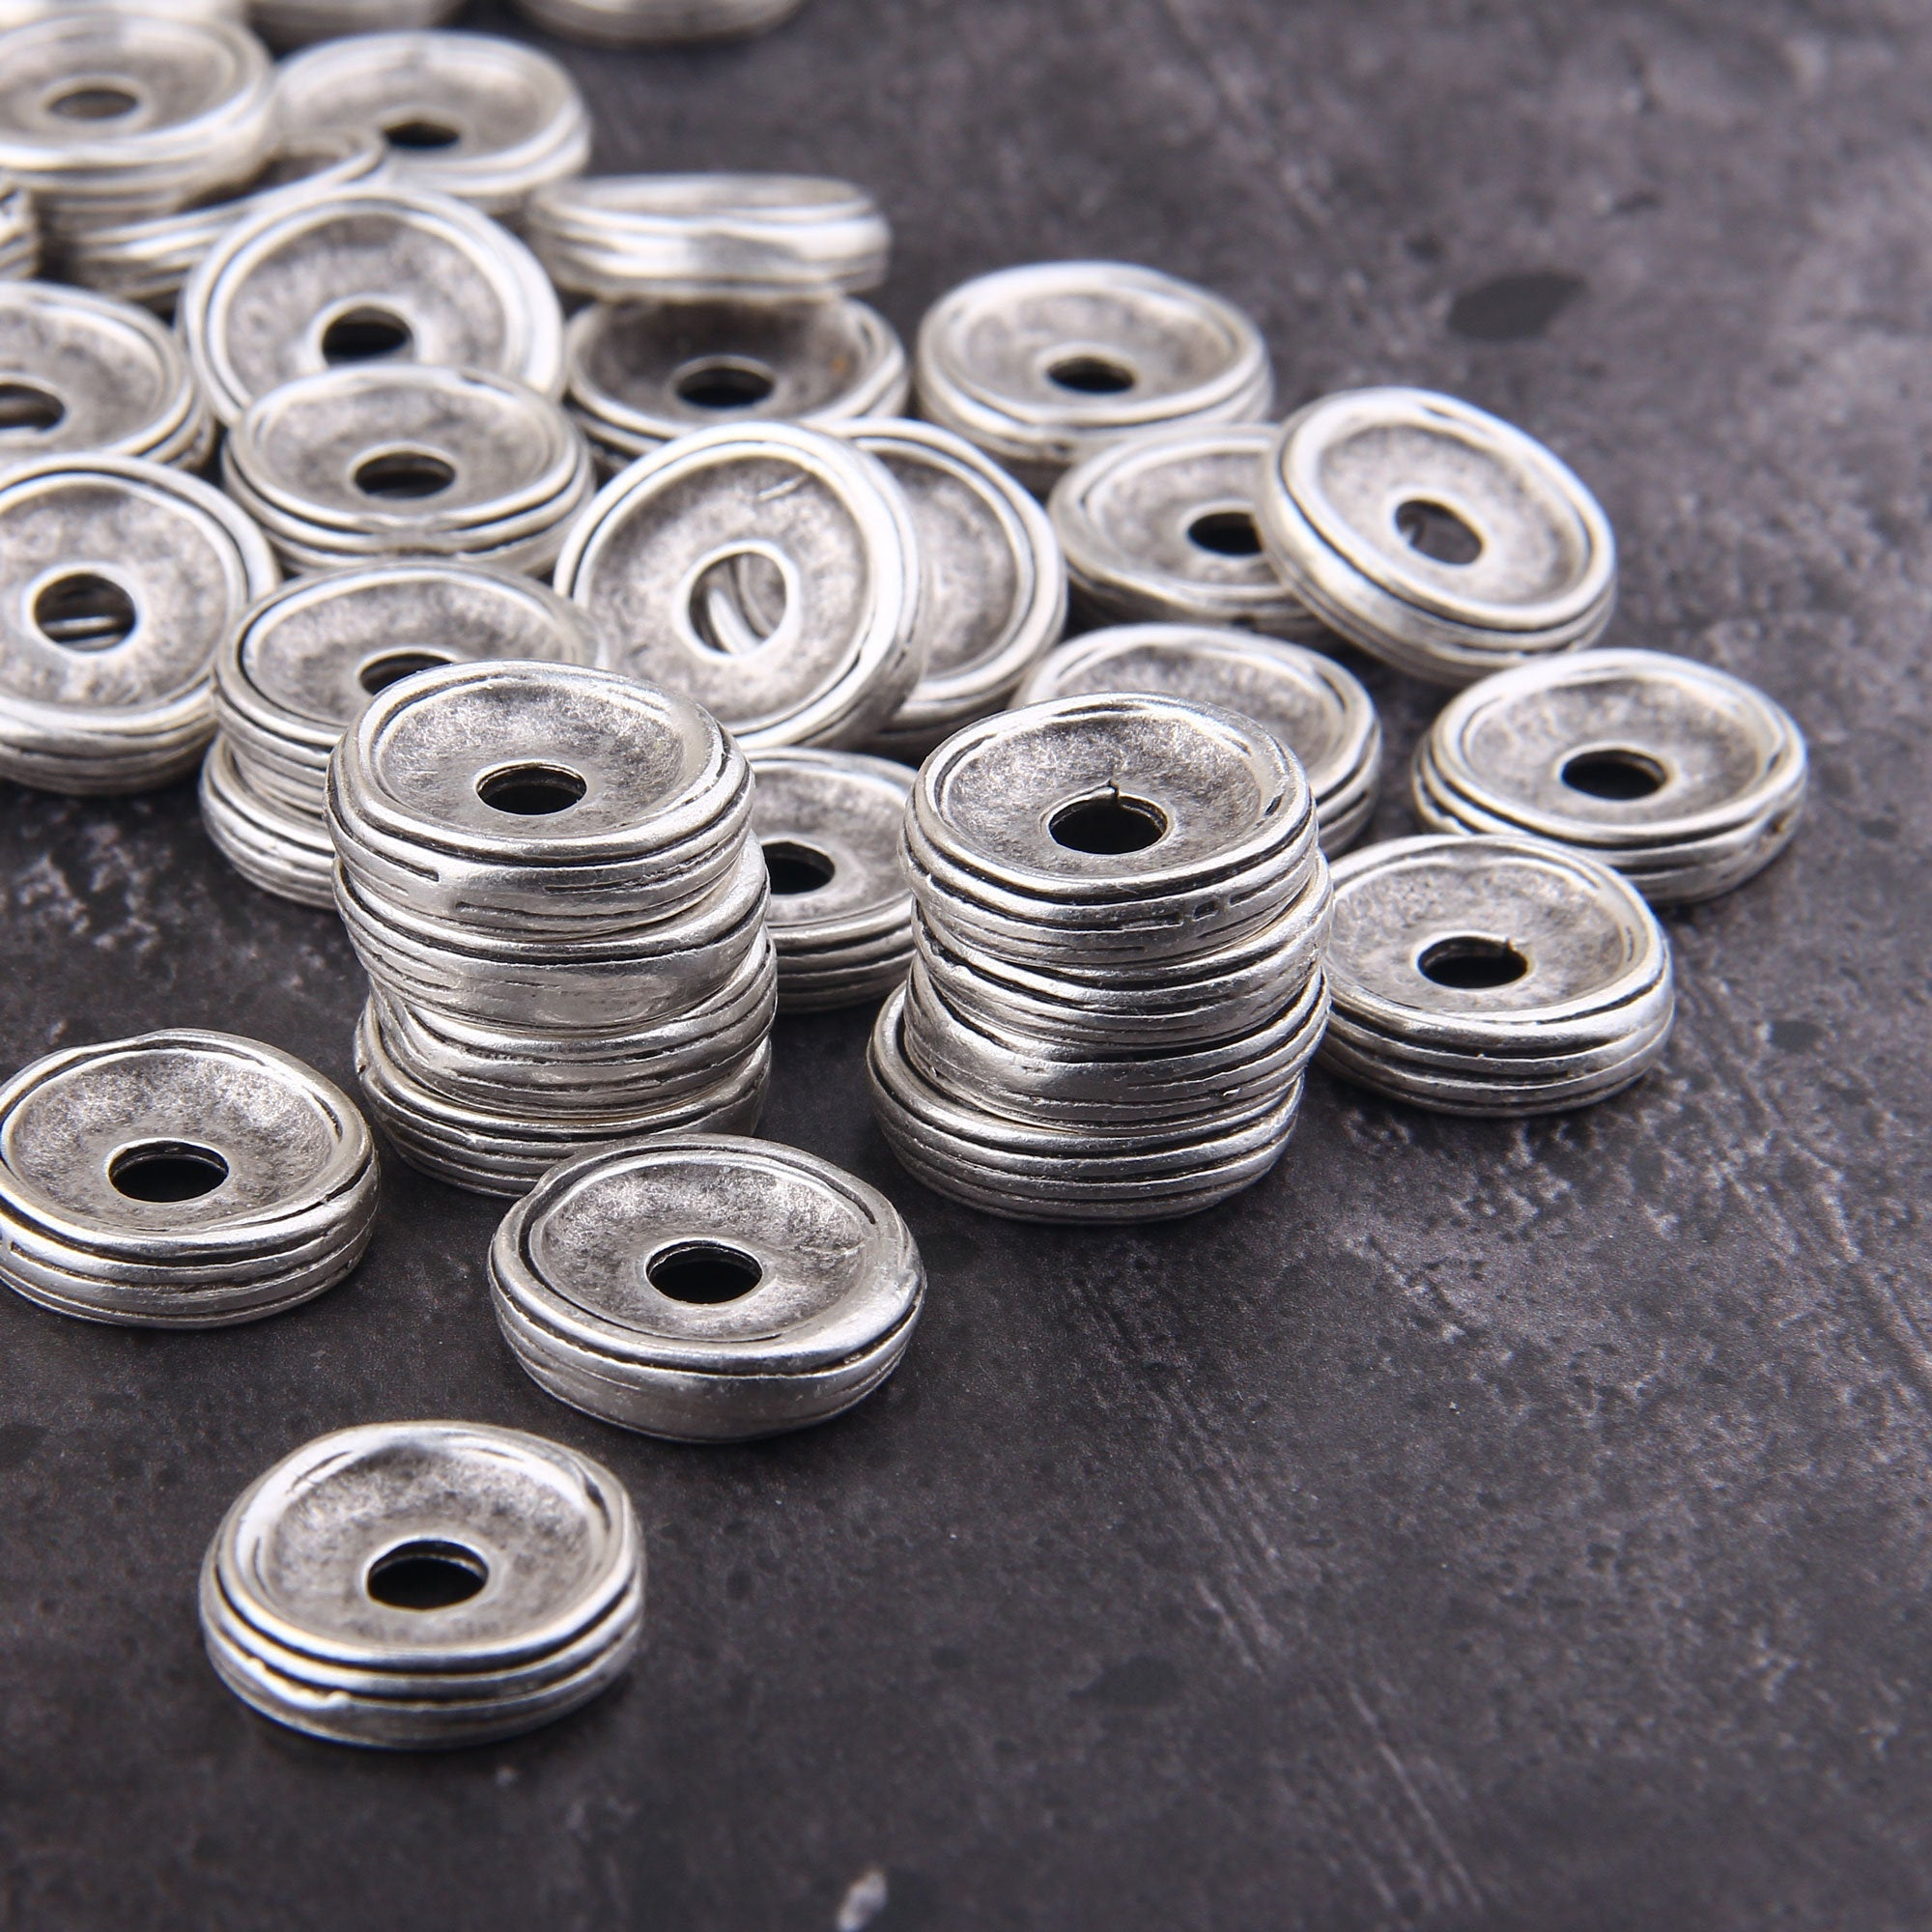 Rondelle Spacer Beads, Chunky Disc Beads, Silver Spacer Beads, Disc Saucer Beads, 4 pcs, 20 mm // SB-152